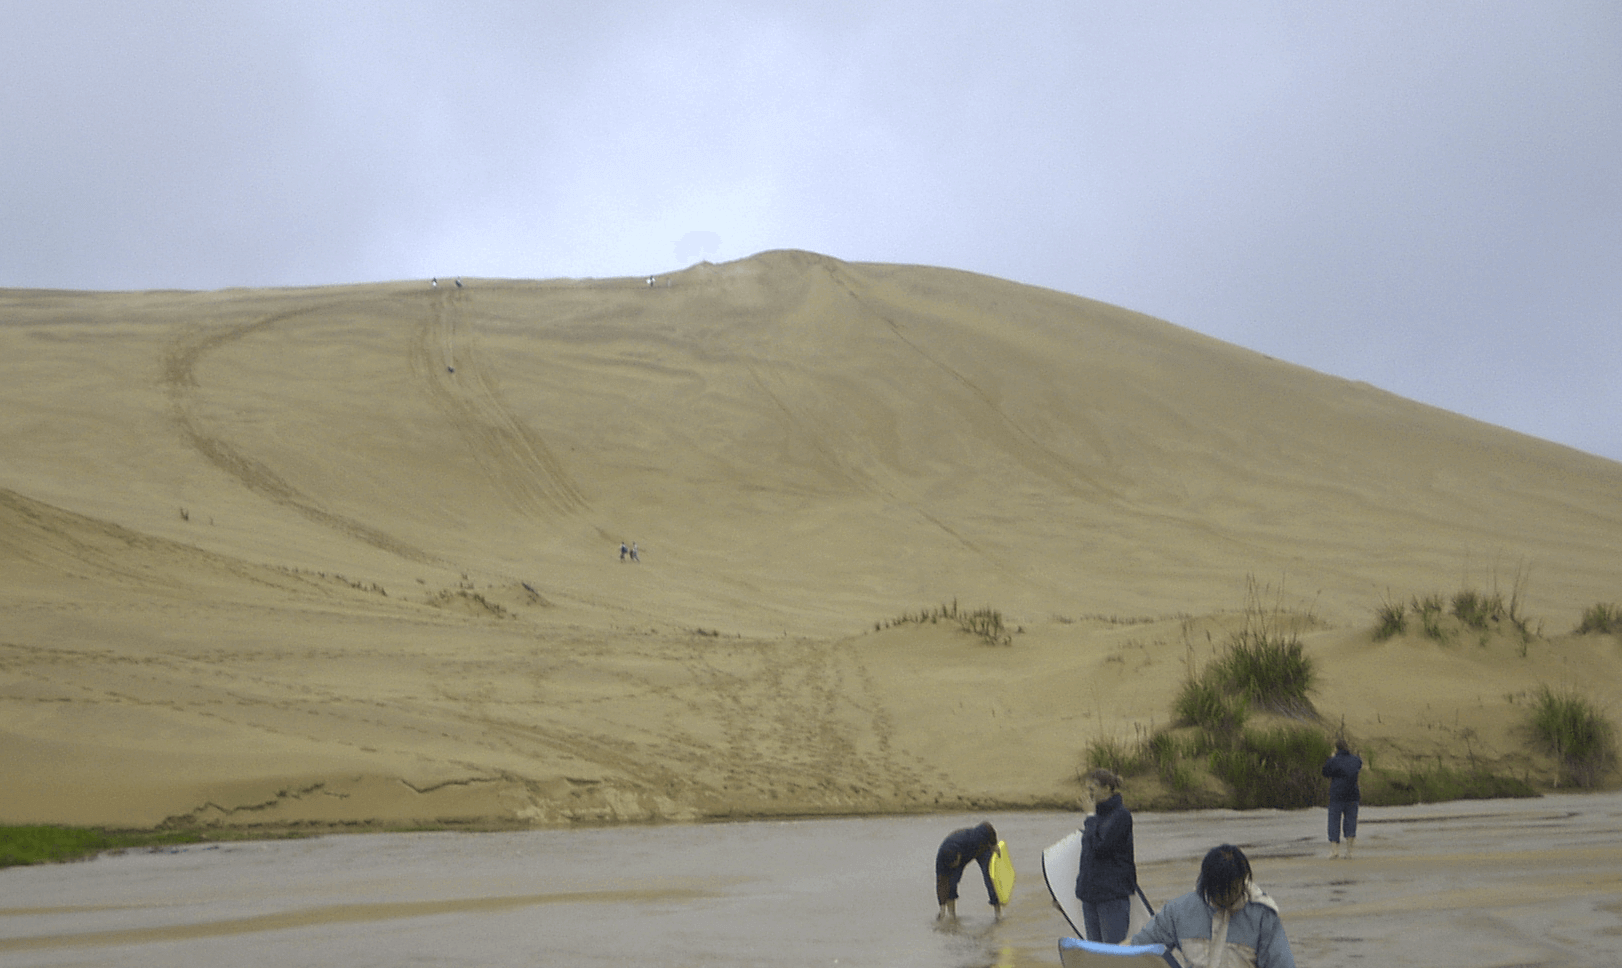 Surf on gigantic dunes at 90-mile beach